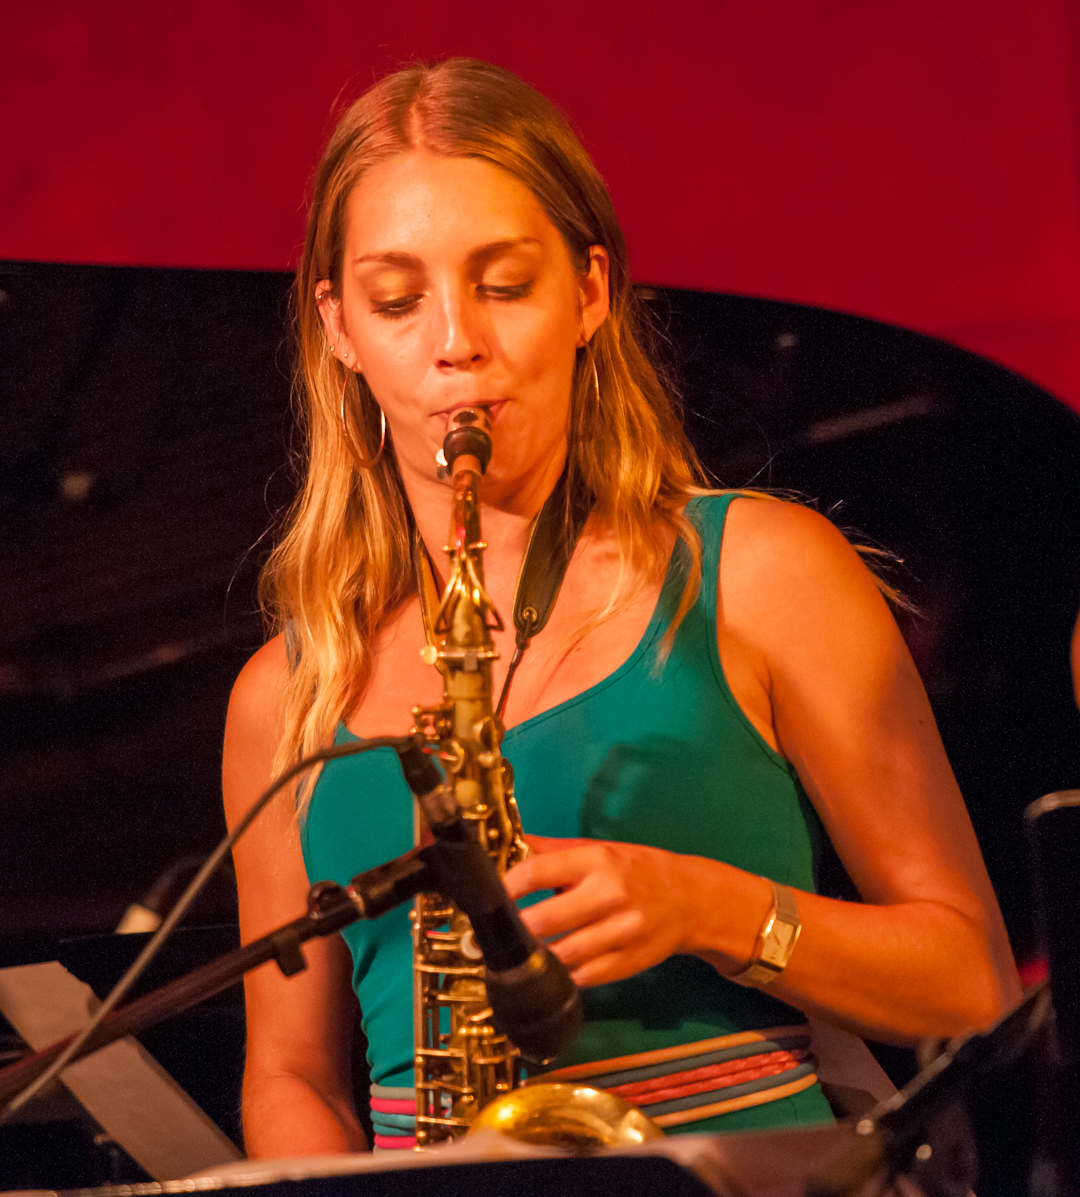 Hailey Niswanger with the Either/Orchestra at the Jazz Standard